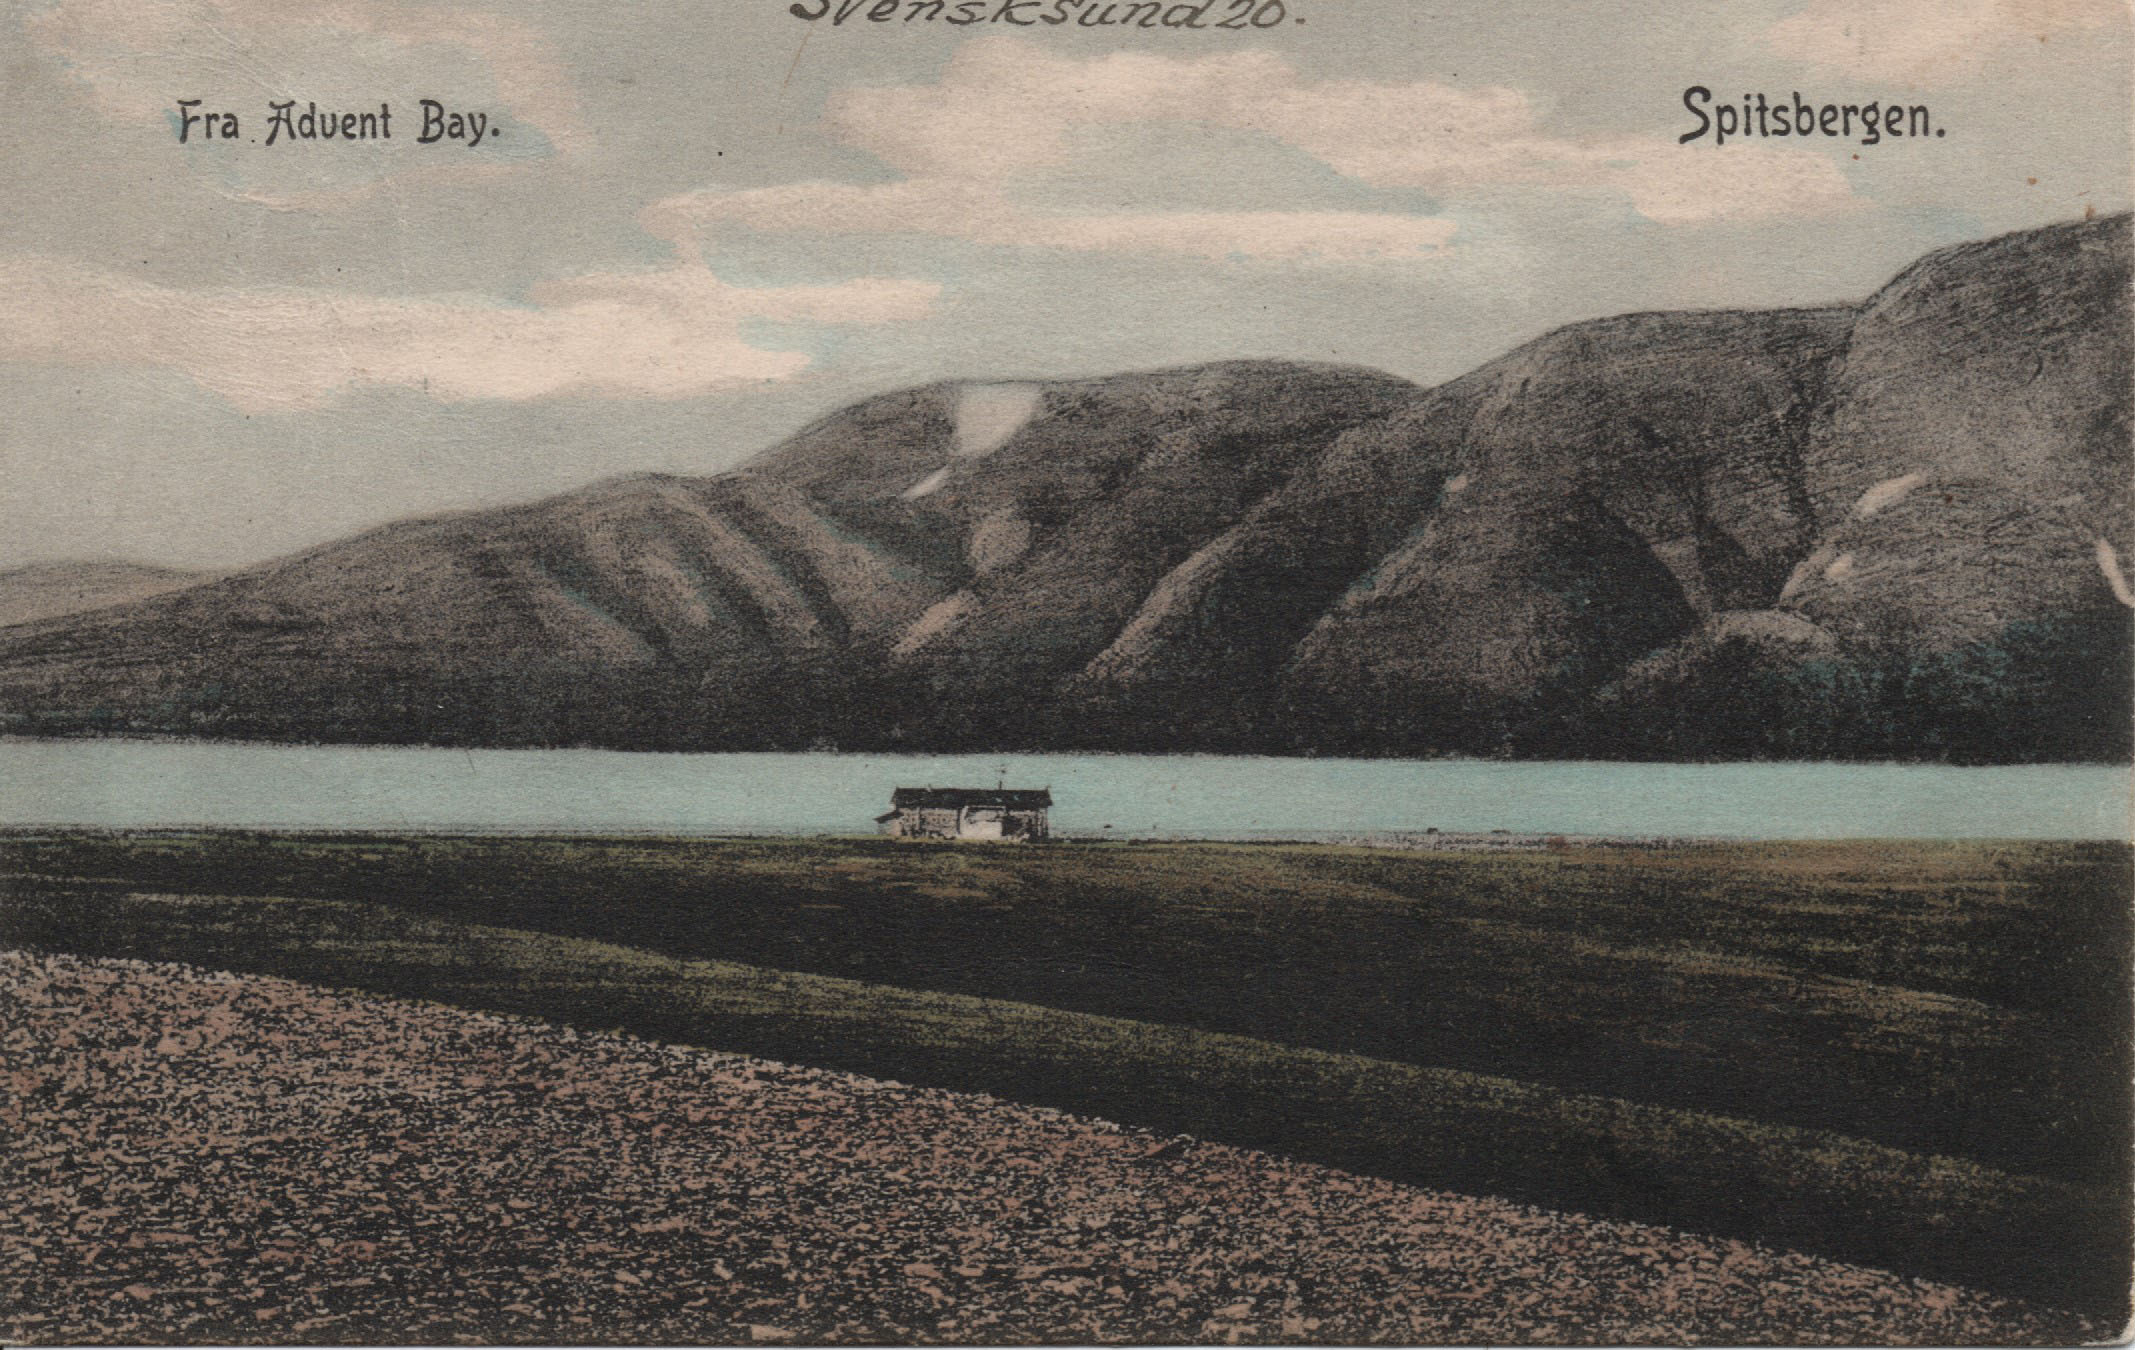 Advent Bay Spitzbergen Spitsbergen Svalbard 1908